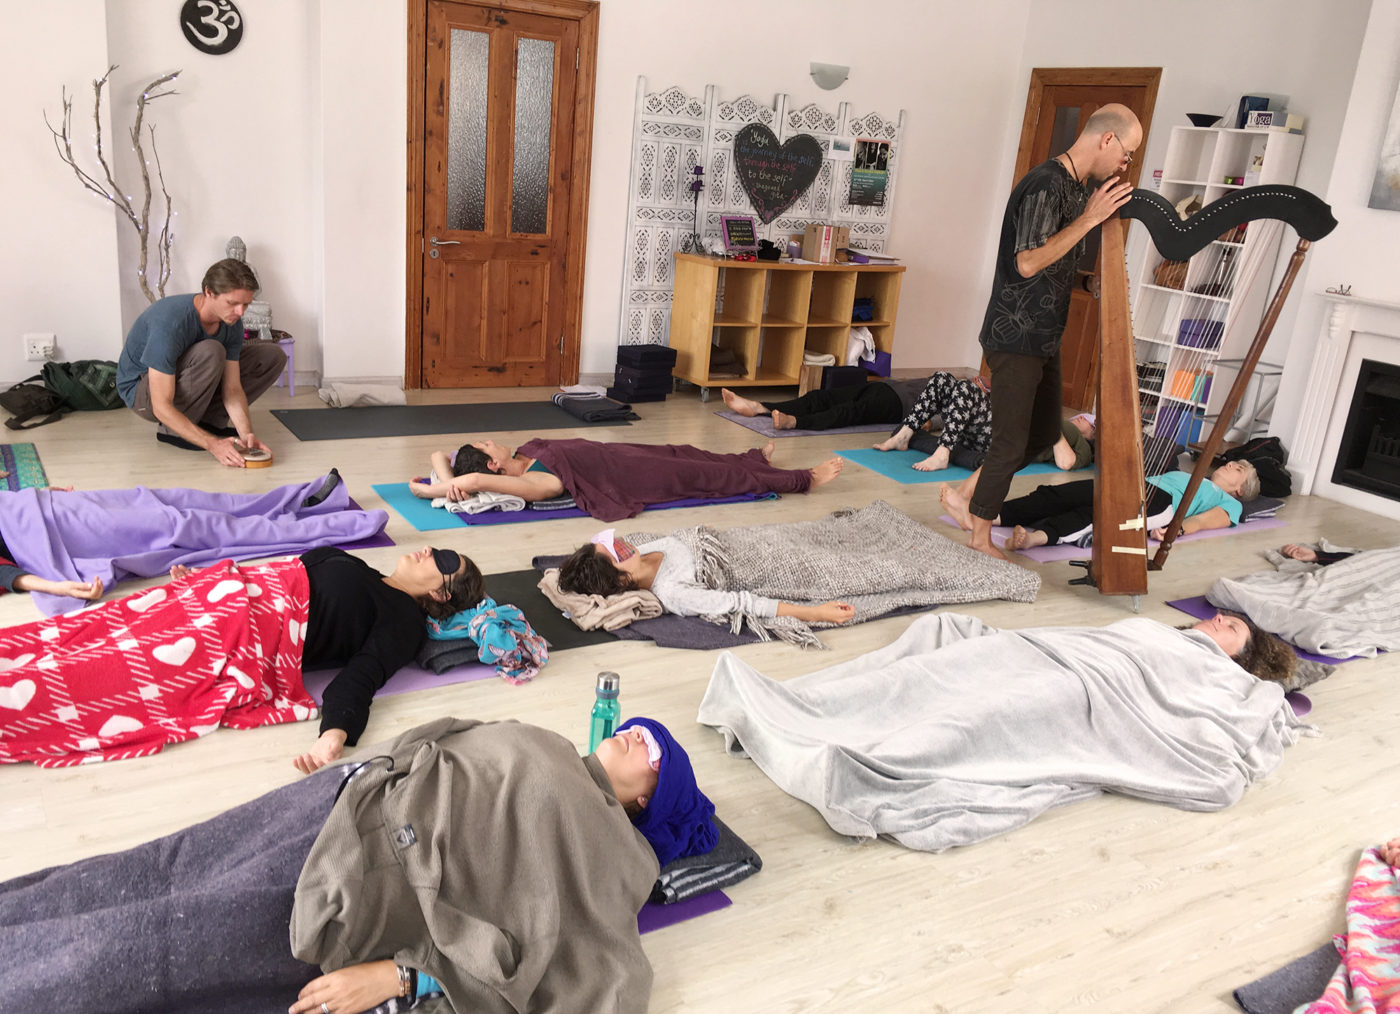 Some photos from the Yoga and Sound Day – 10 Feb 2019